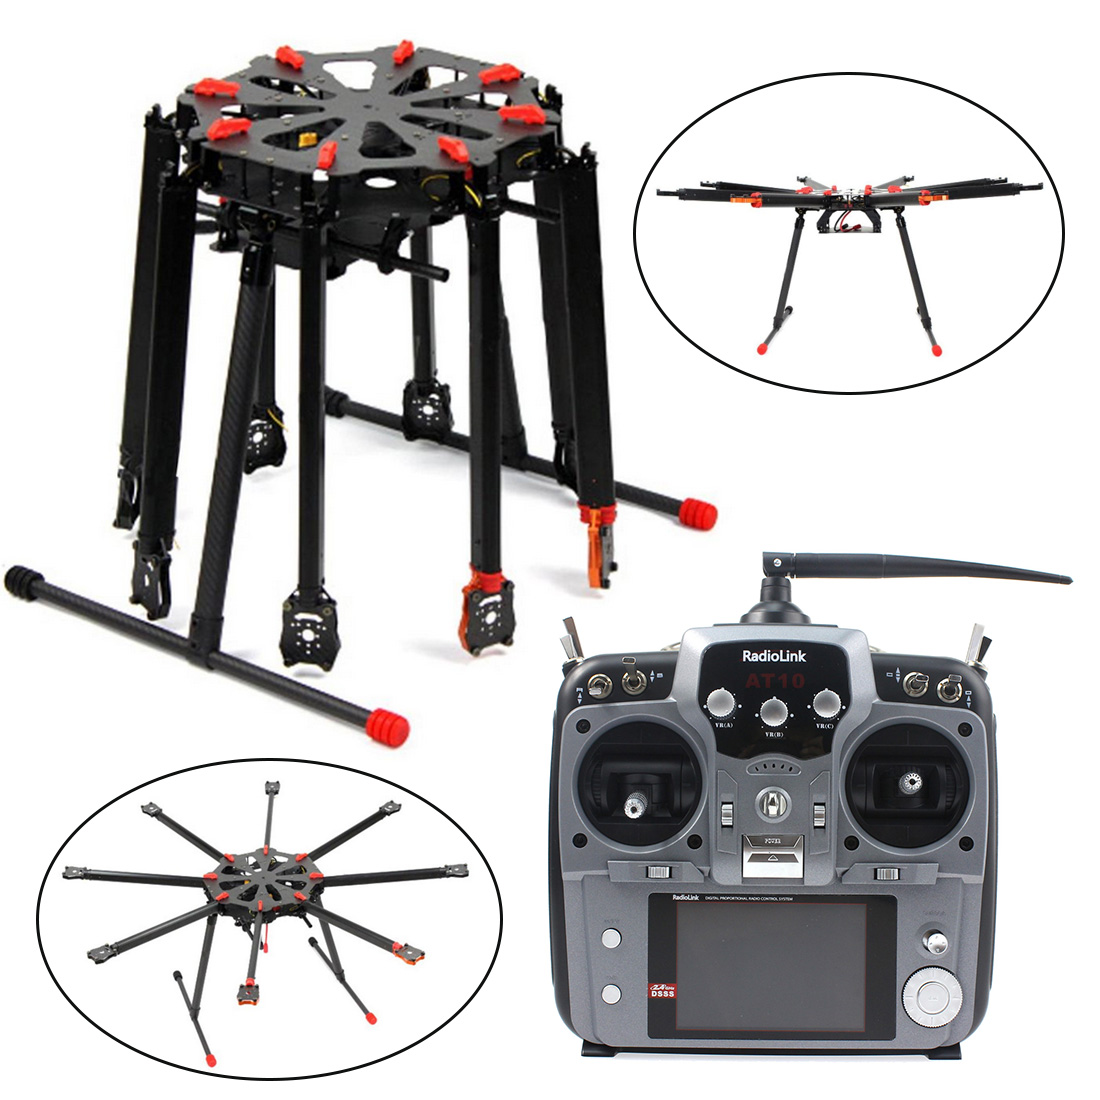 JMT Pro 2.4G 10CH RC 8-Axle Octocopter Drone Tarot X8 Folding PIX PX4 M8N GPS ARF/PNF DIY Unassembly Kit Motor ESC F11270-A/B/C